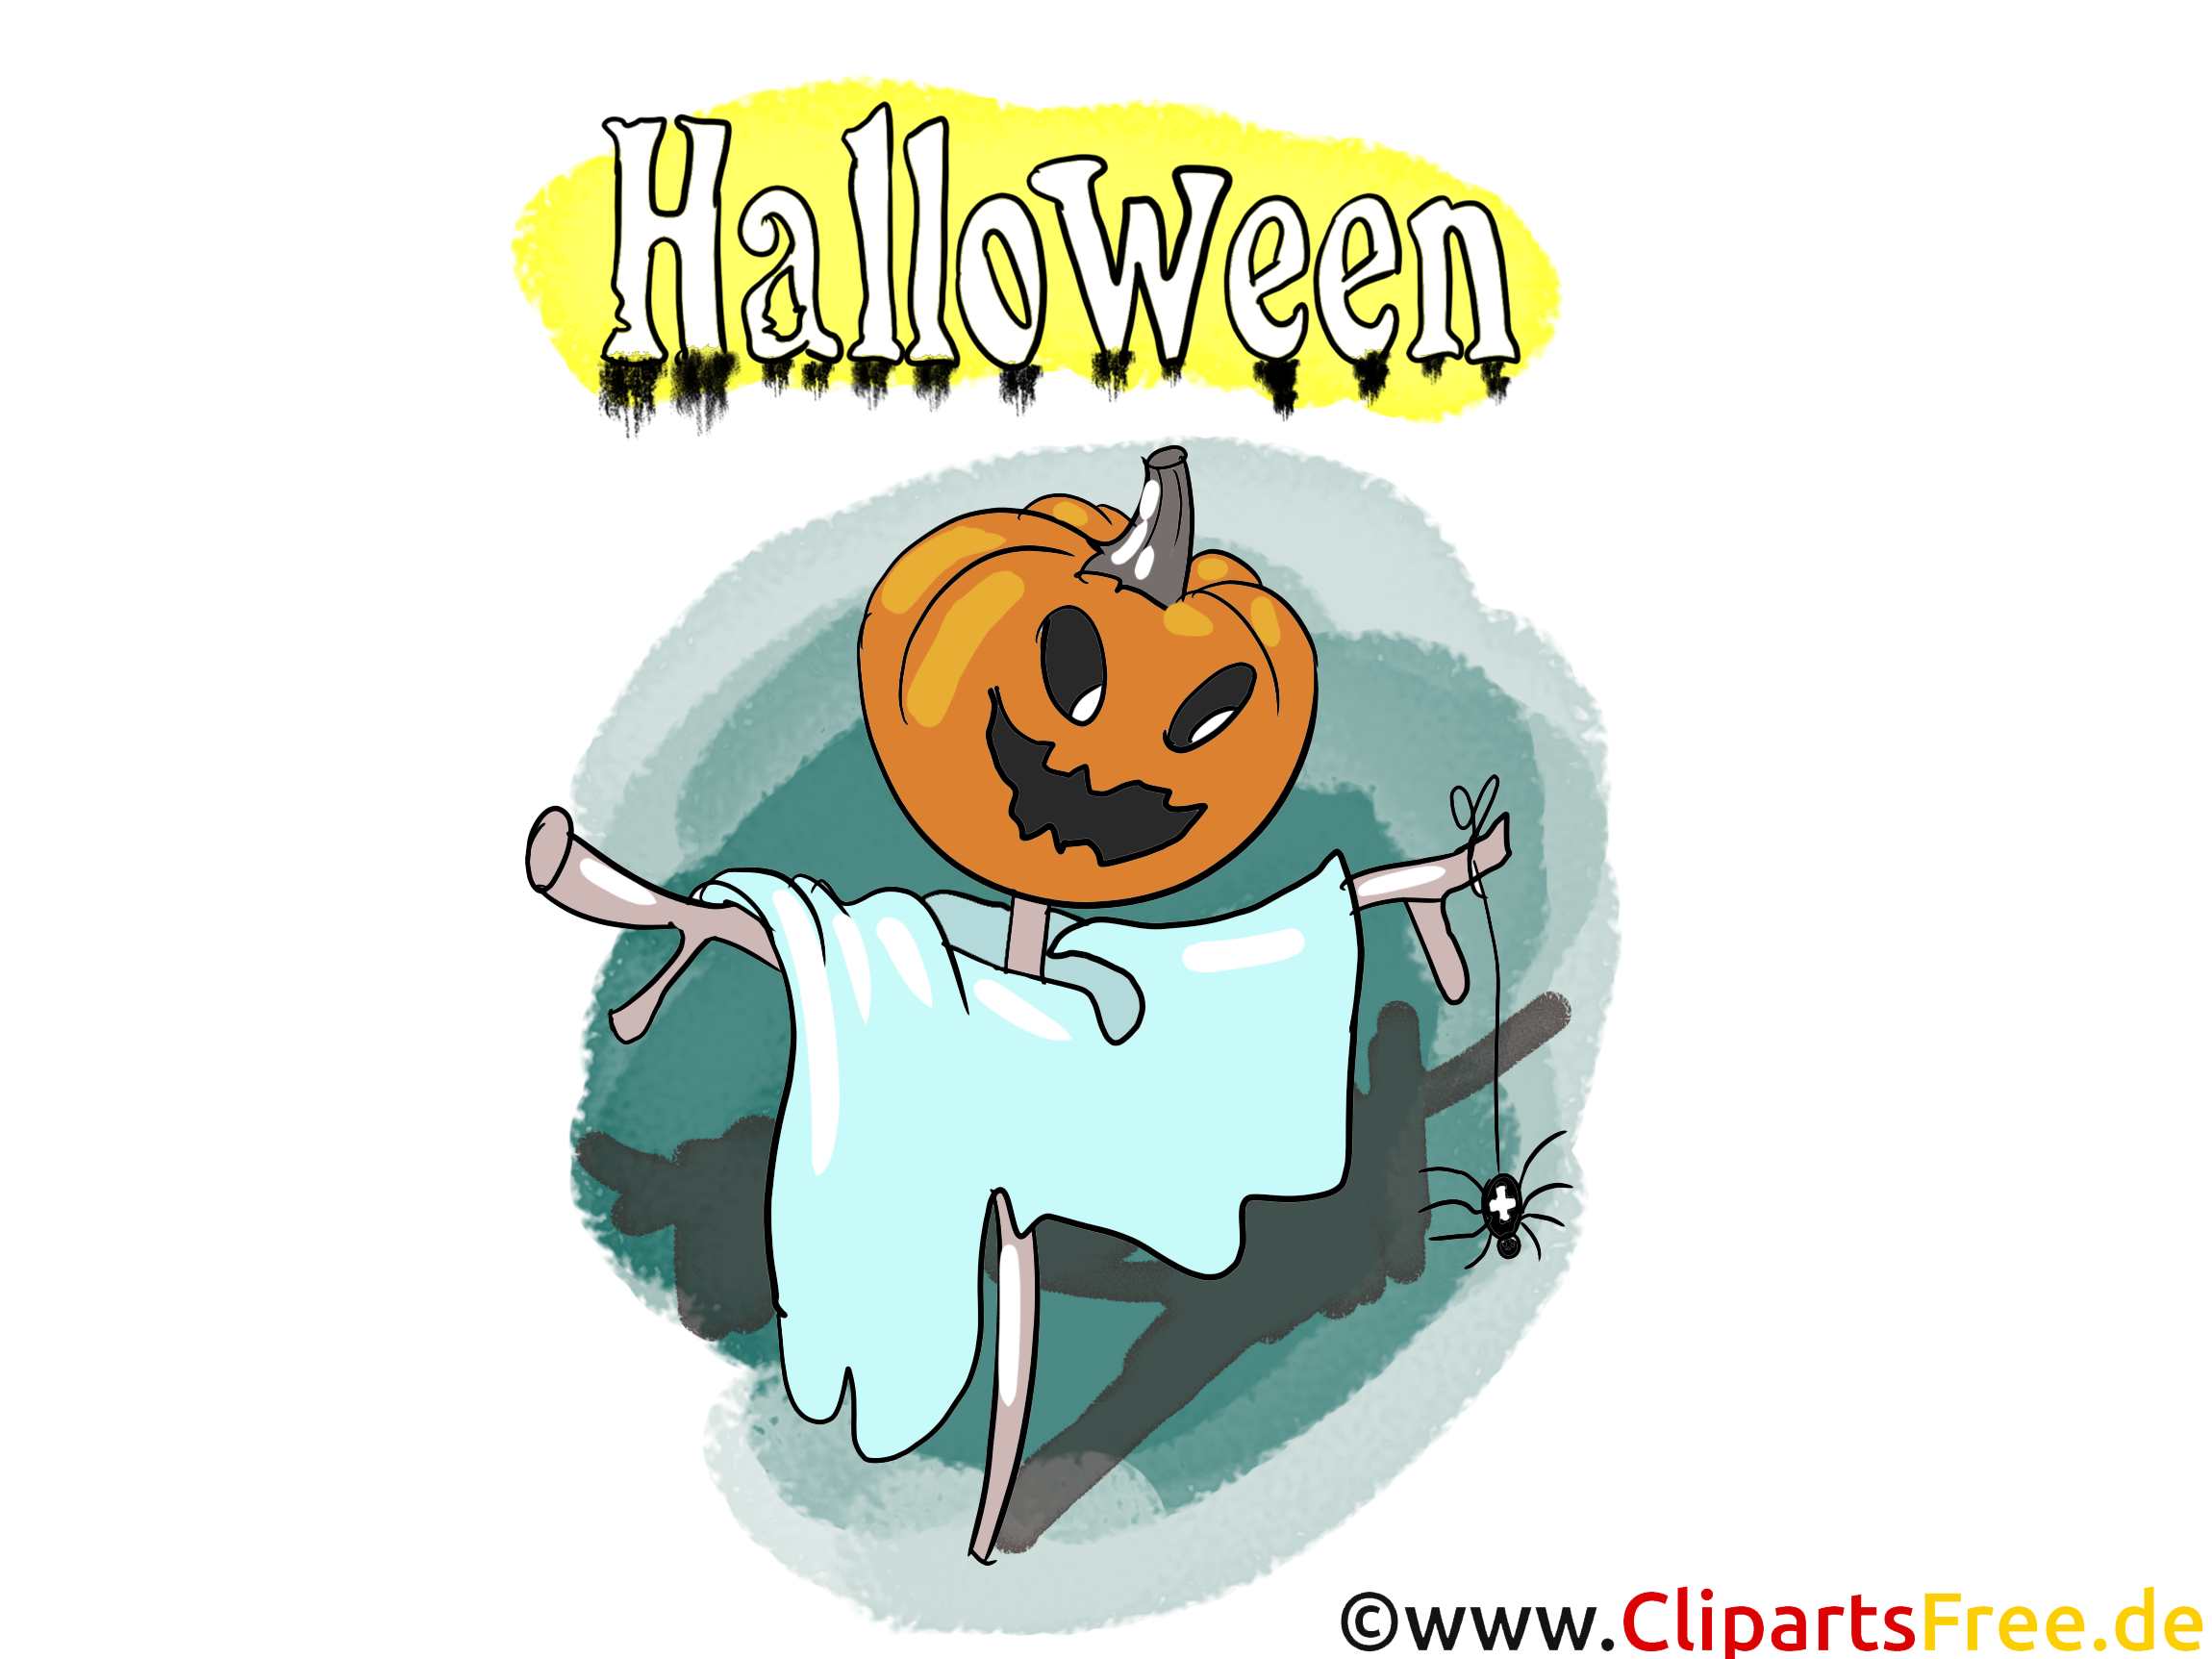 Halloween Karte - Illustrationen, Bilder, Grafiken, Cliparts, Comics, Cartoons